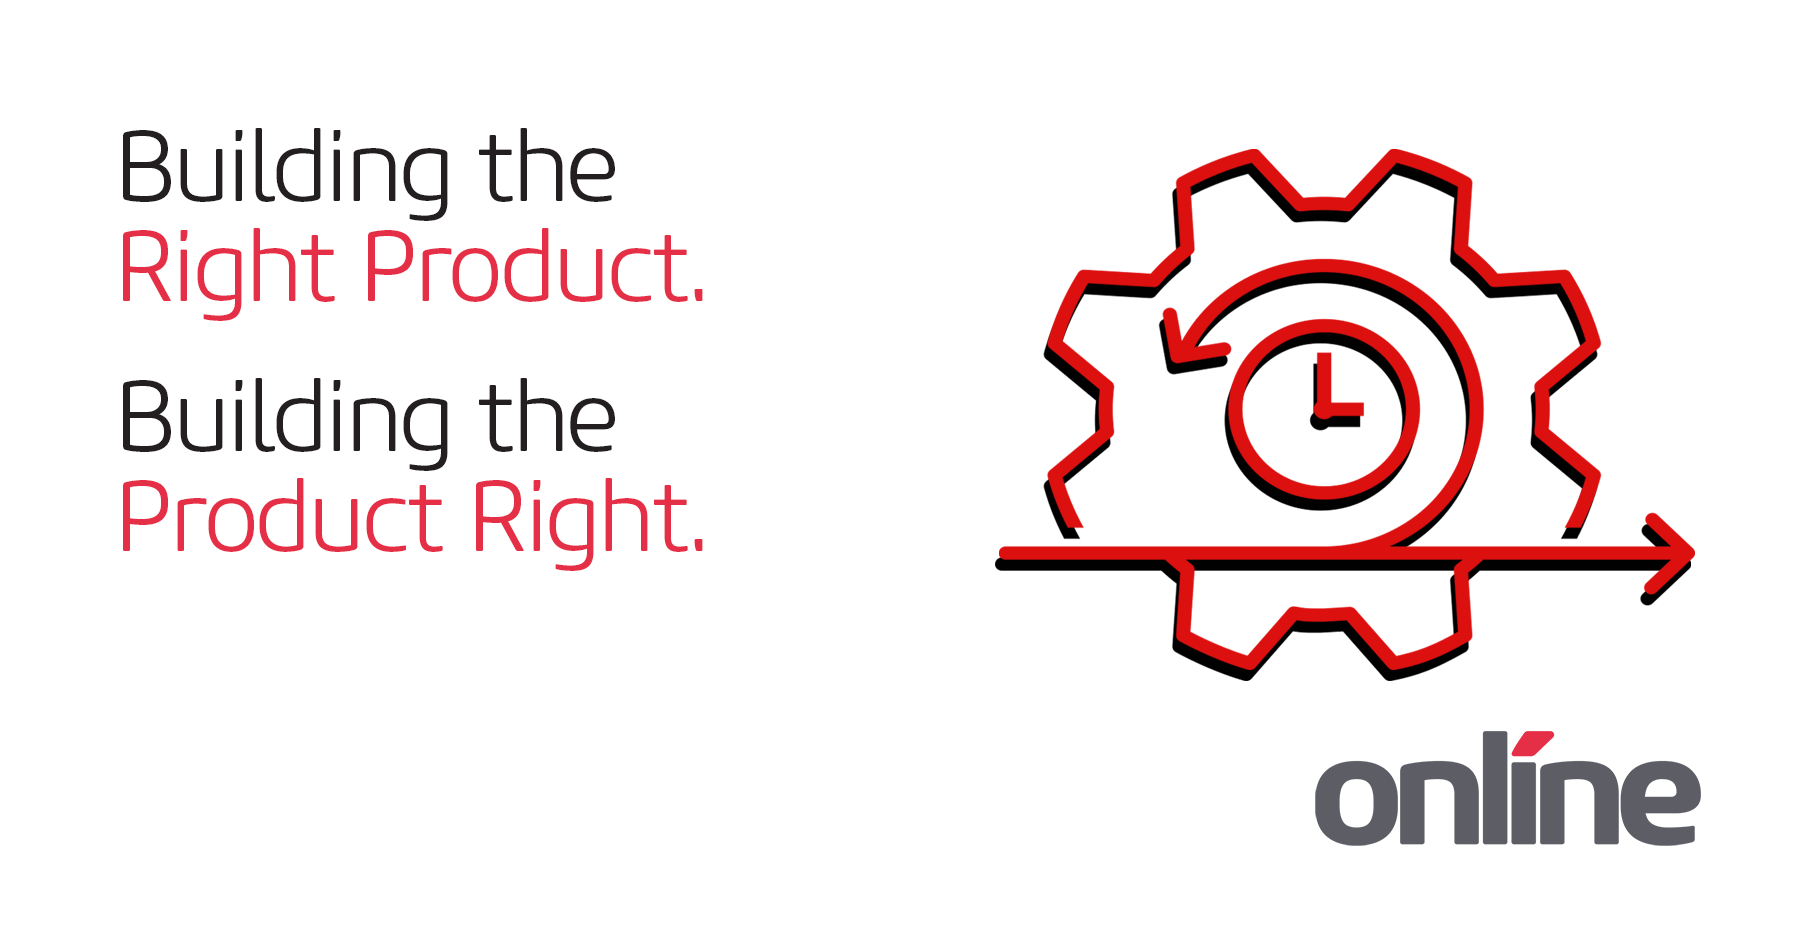 Building-the-Right-Product